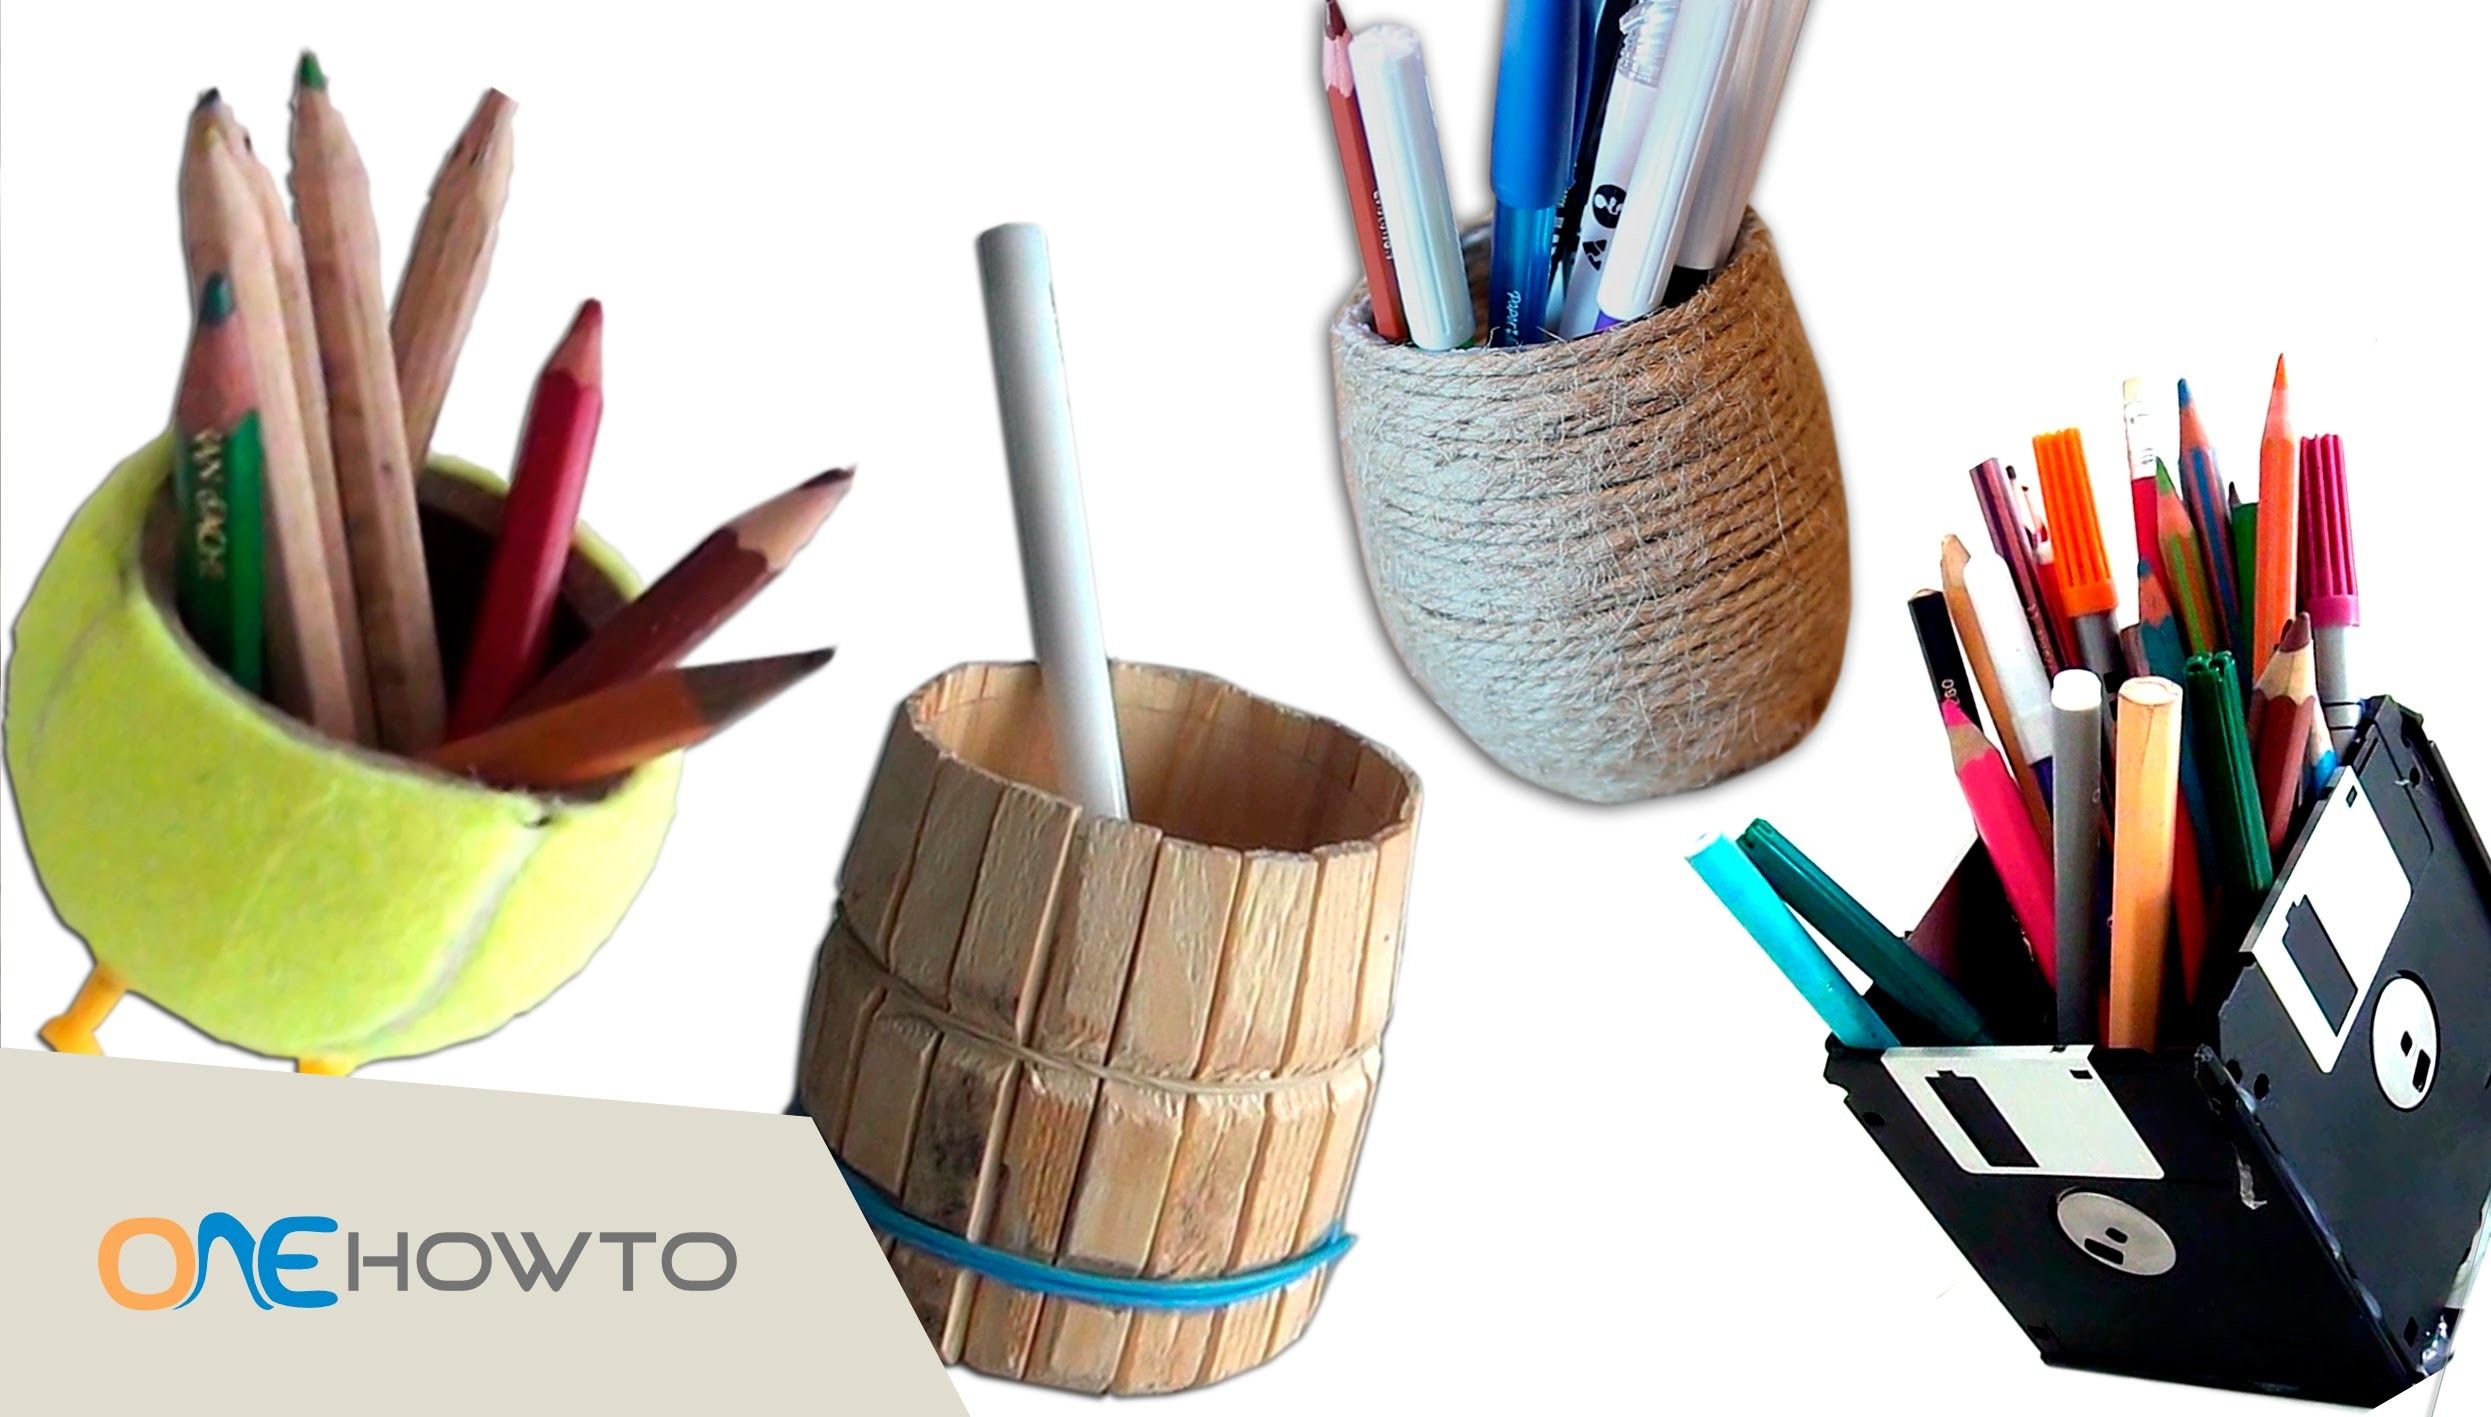 4 diy pencil holders crafts with waste material my for Crafts by using waste material